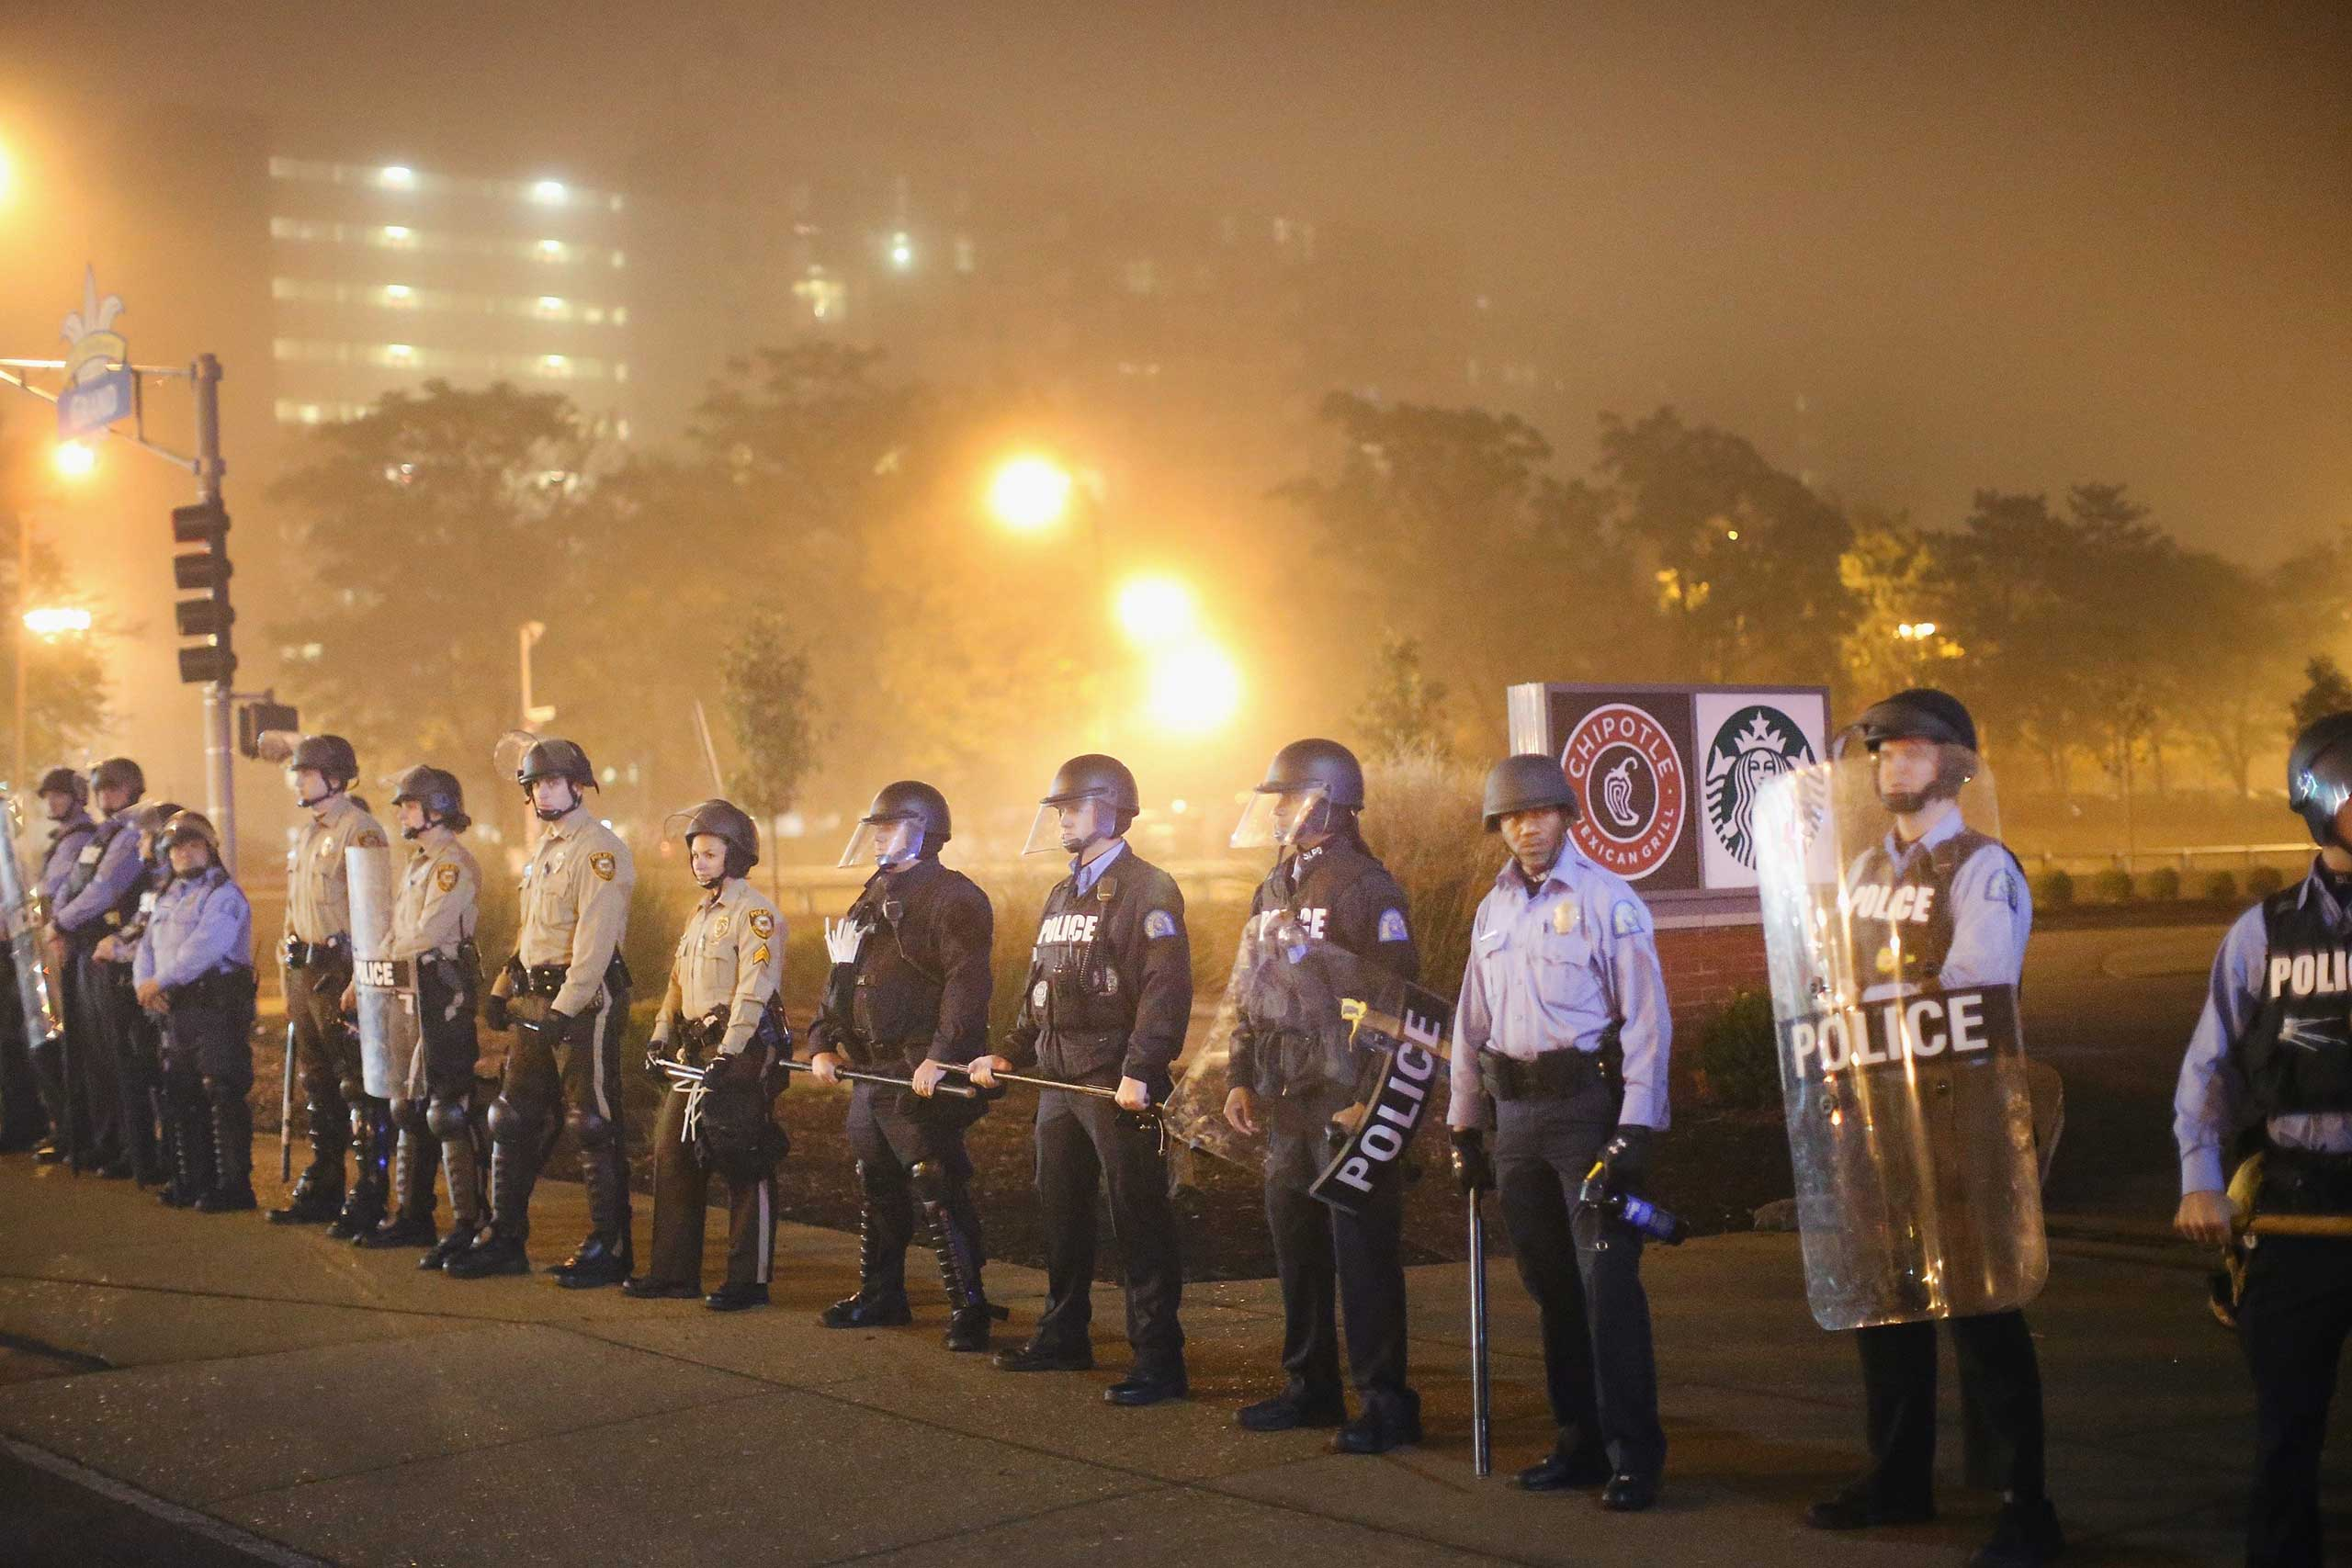 Police stand guard as demonstrators march through the streets of St. Louis on Oct. 13, 2014.